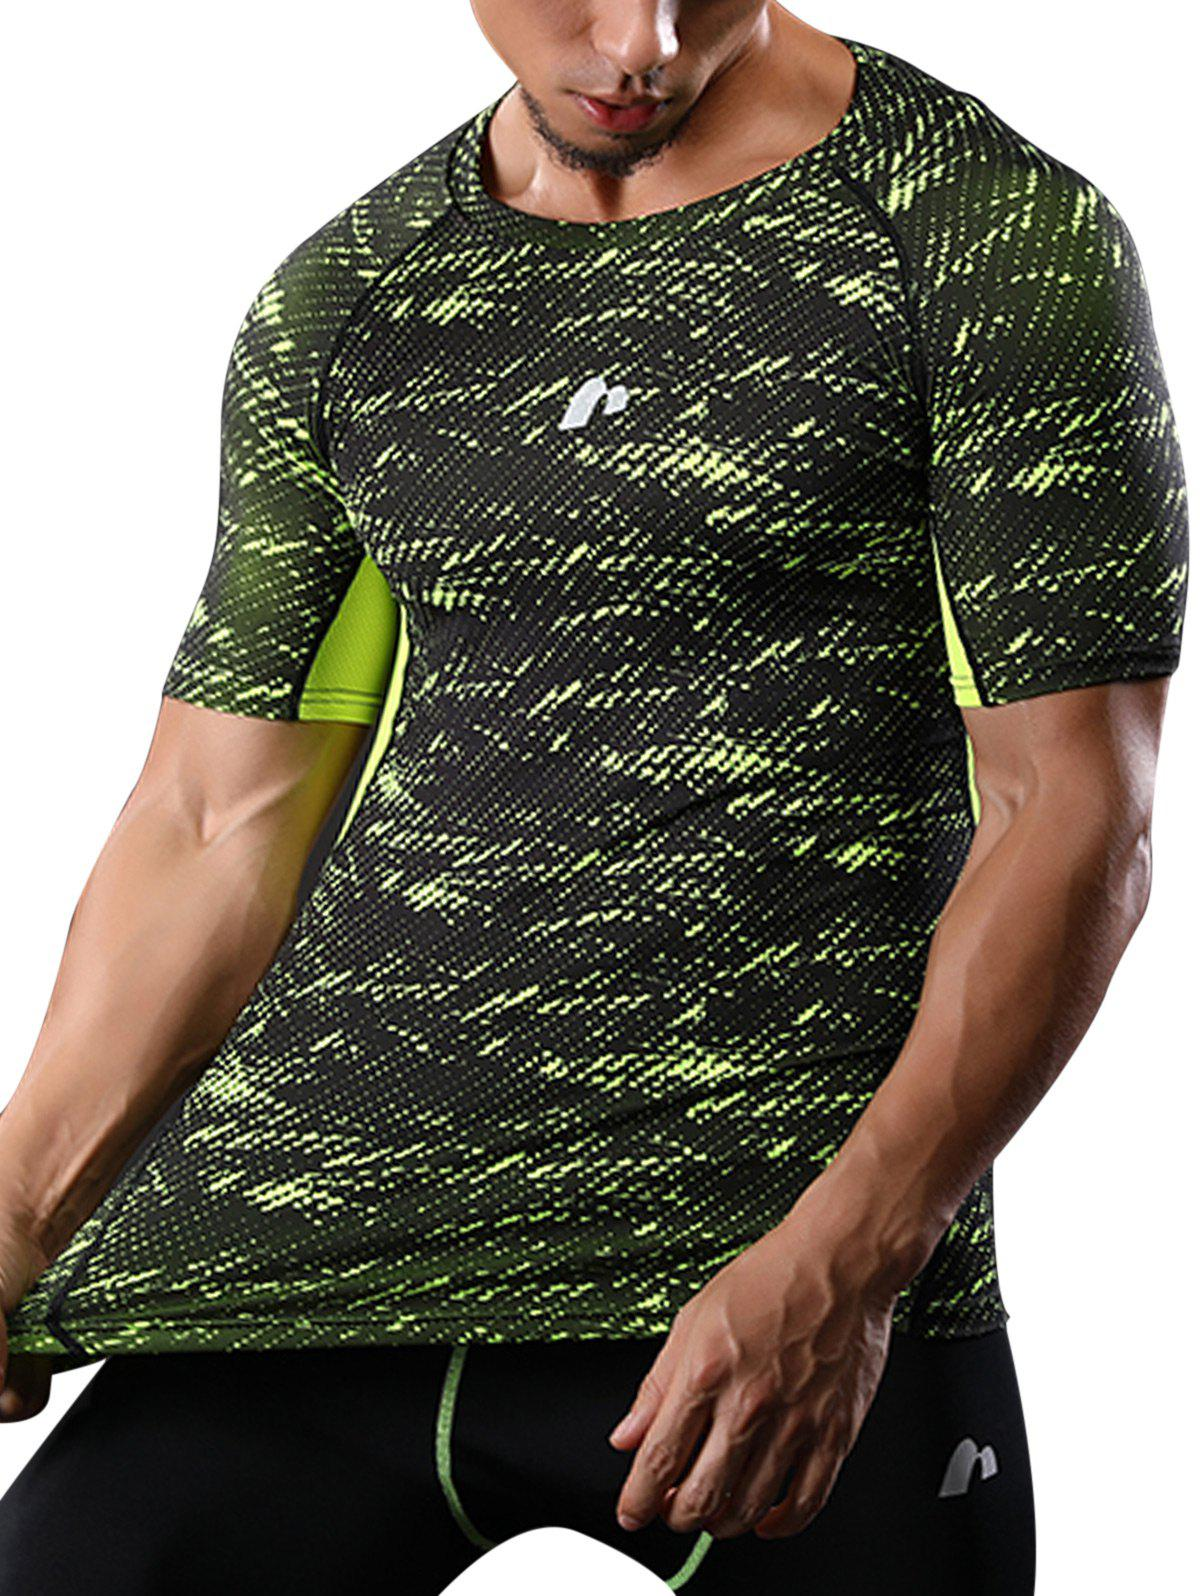 Raglan Sleeve Quick Dry Camouflage Stretchy Gym T-shirt - GREEN M